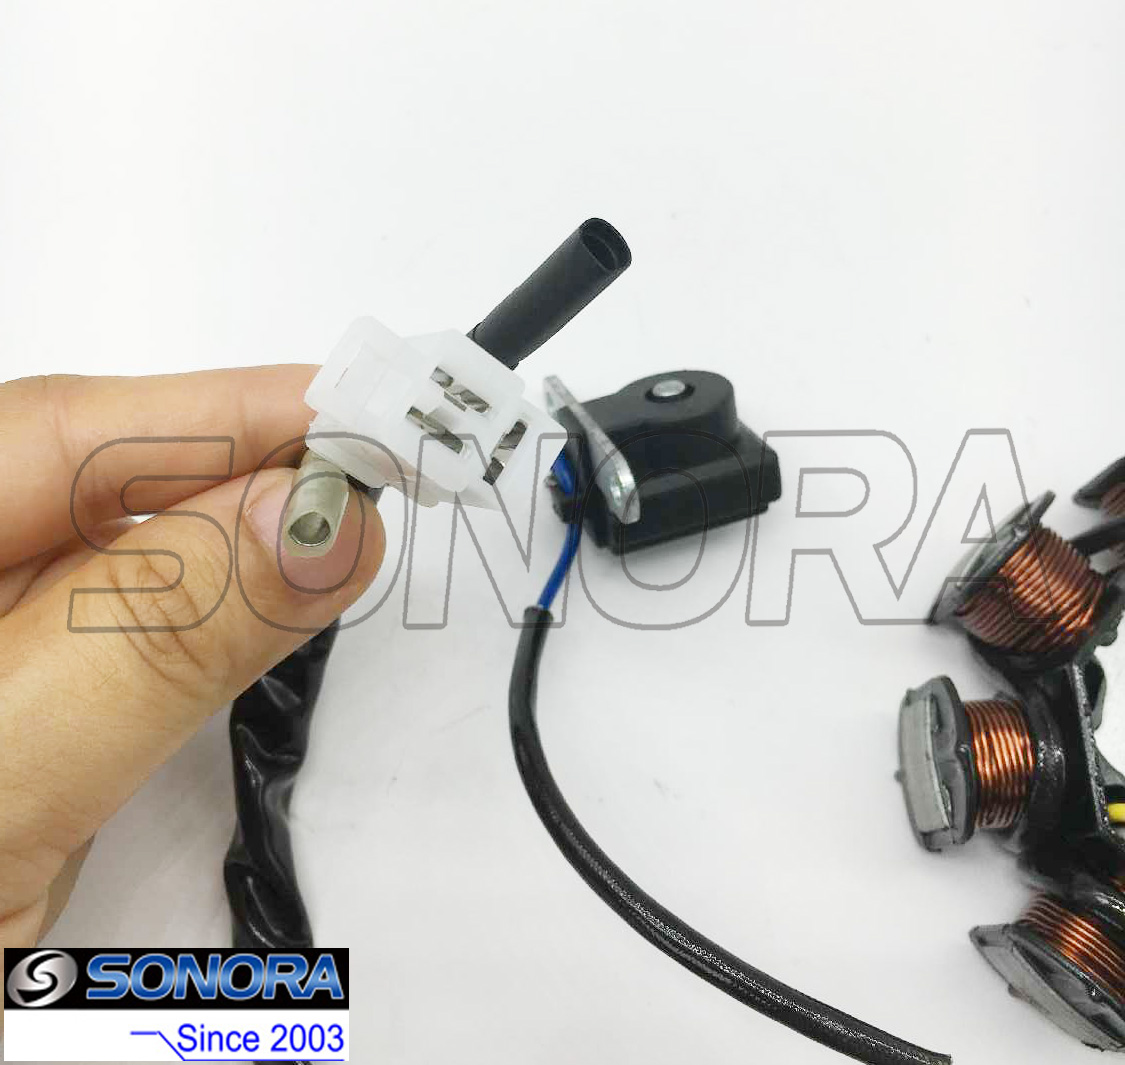 Benzhou scooter coil ignition